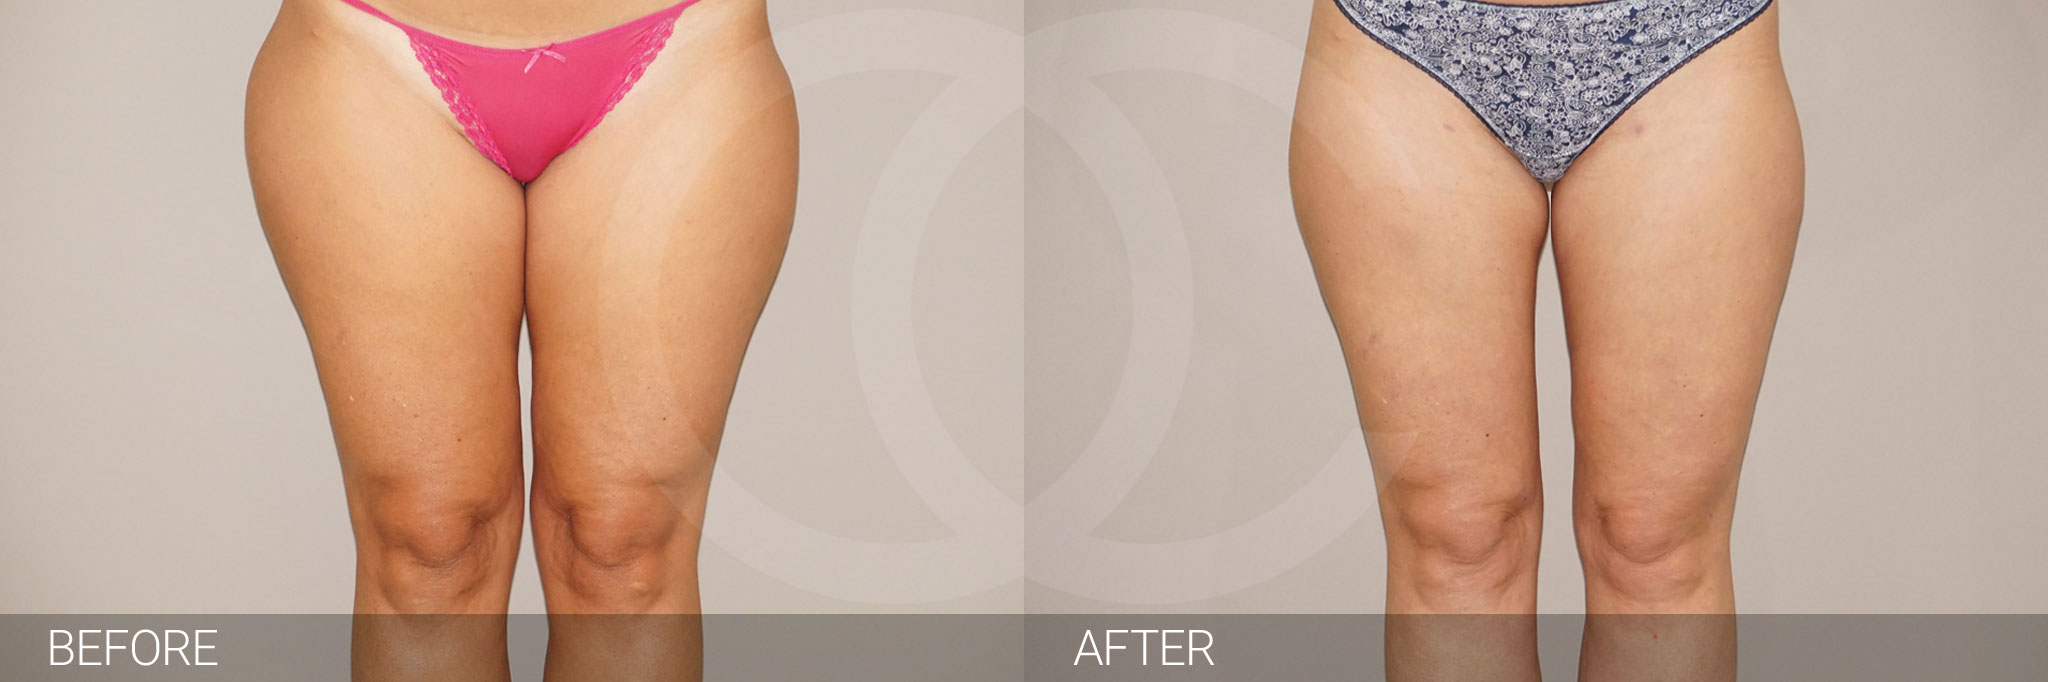 Liposuction / liposculpture photo before and after